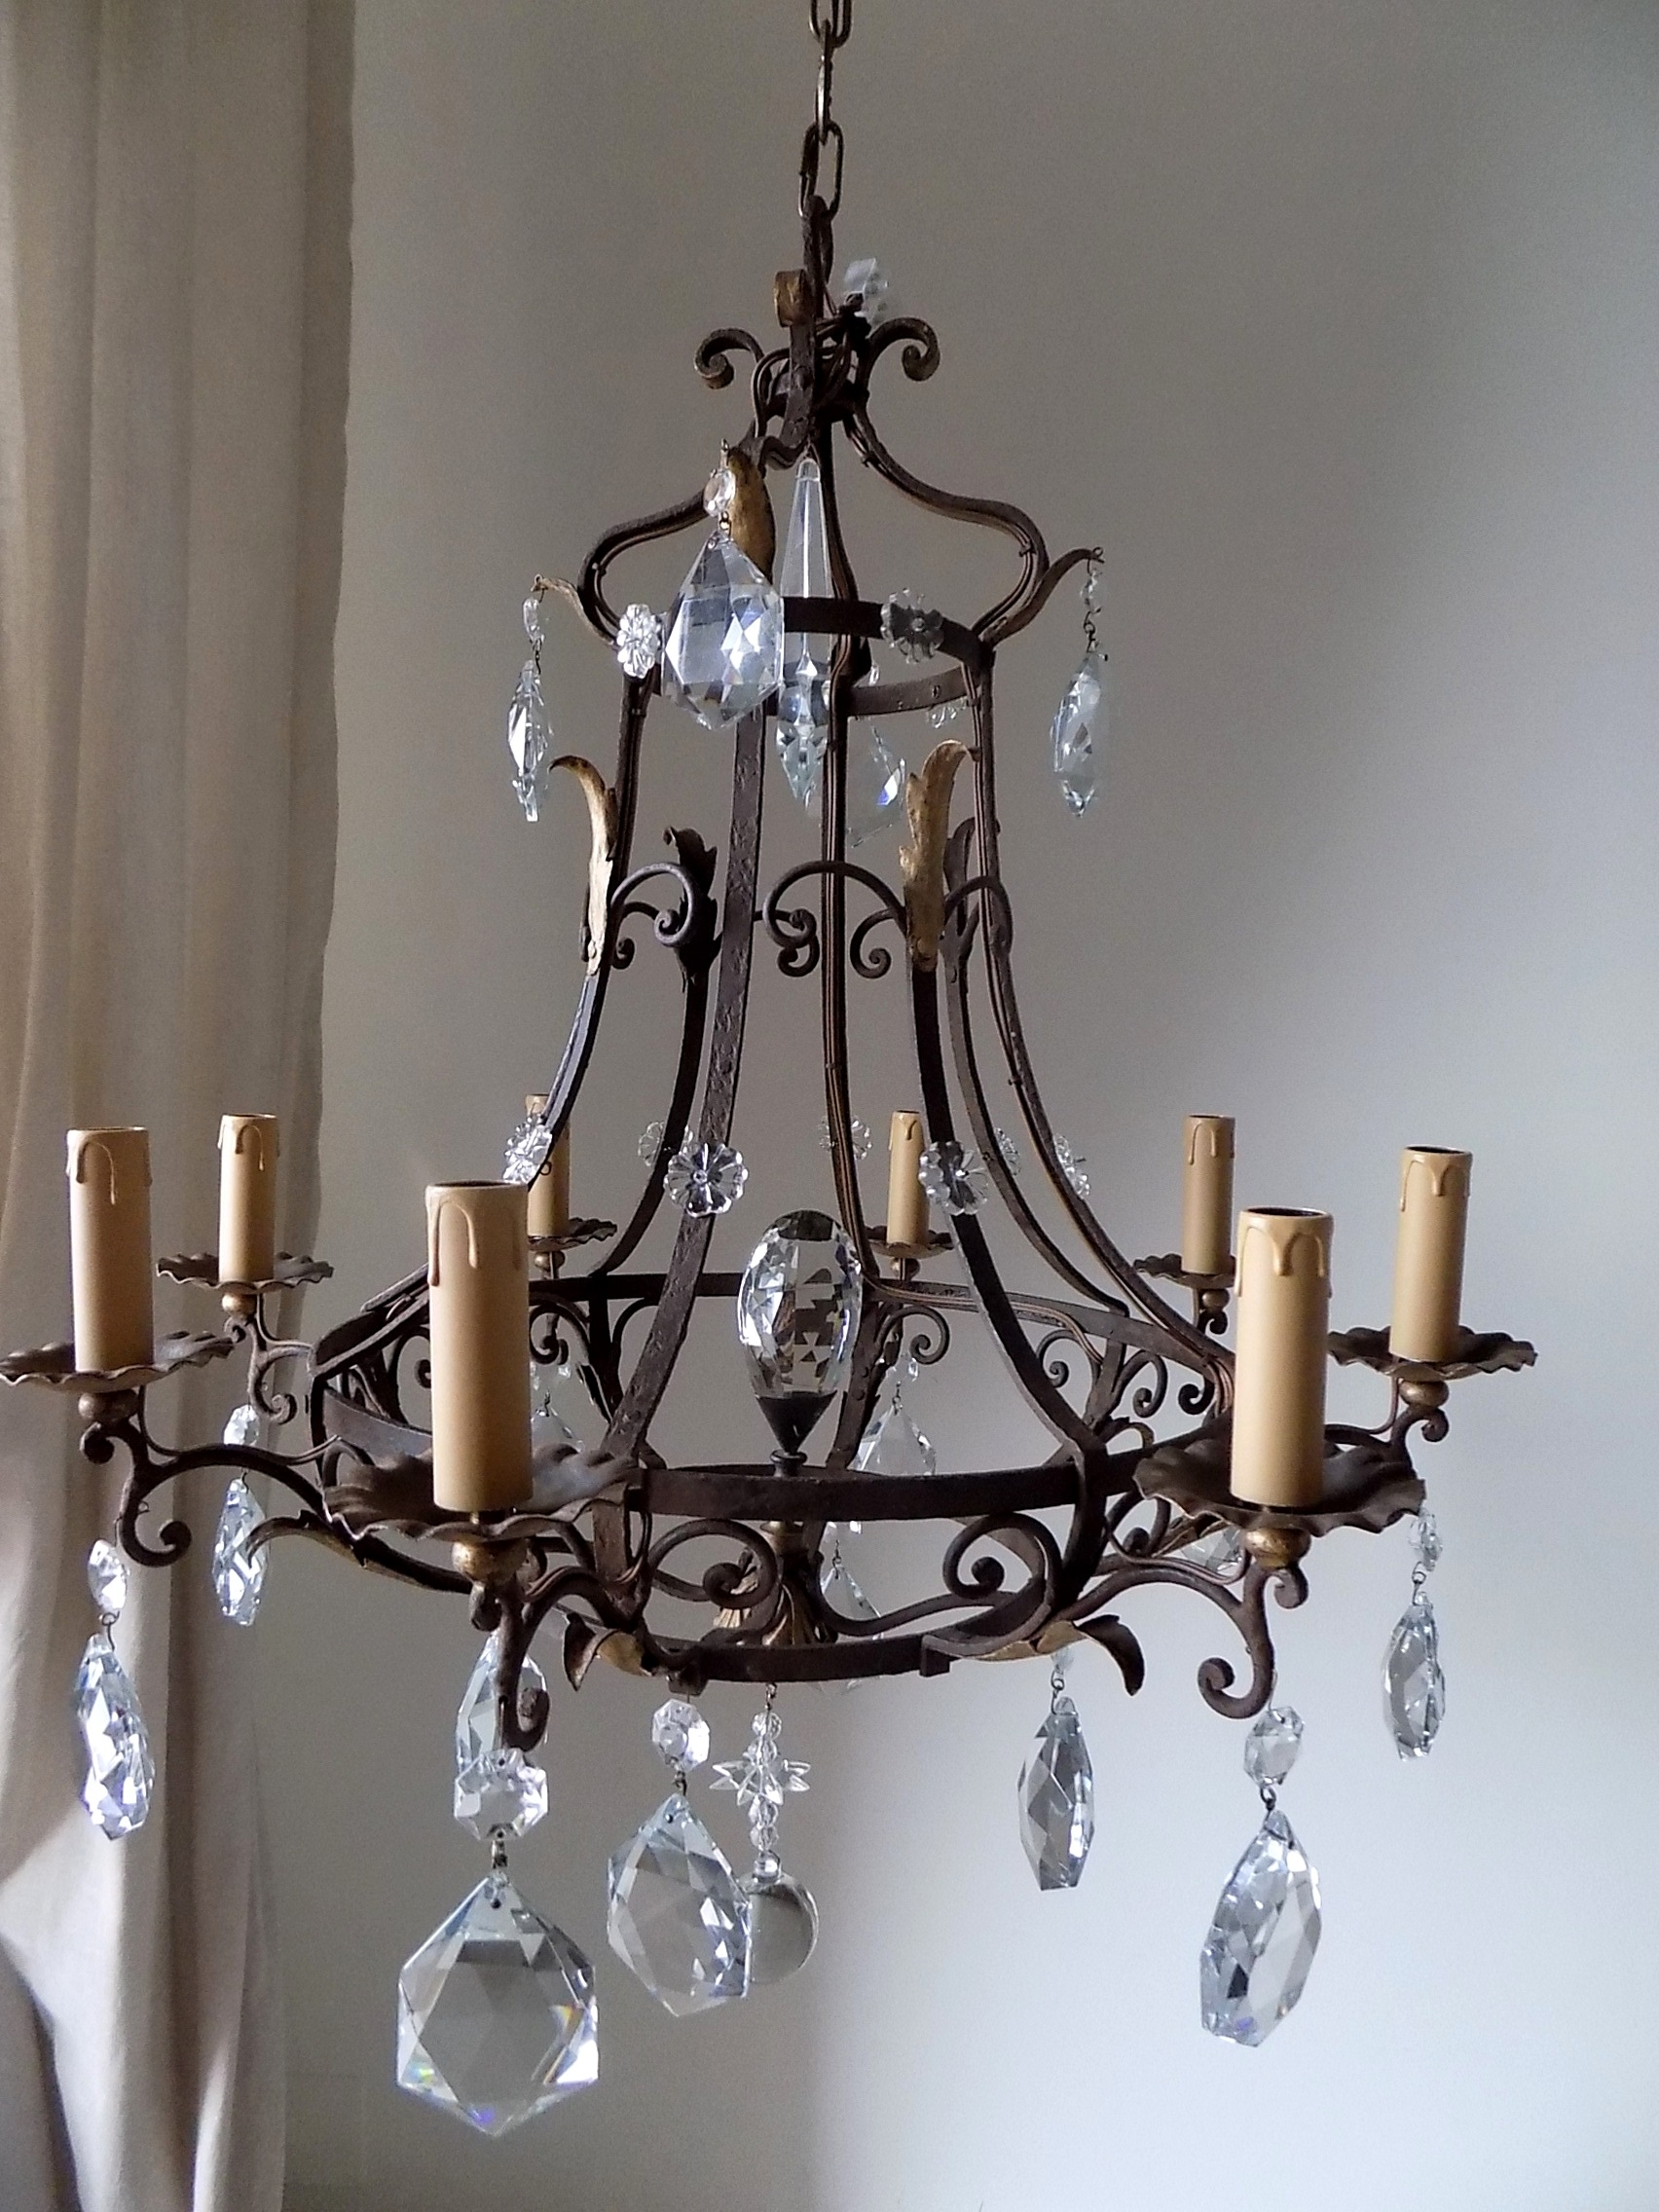 Antique French Chandeliers Throughout Most Current Antique French Iron Chandeliers – Dayri (View 2 of 15)